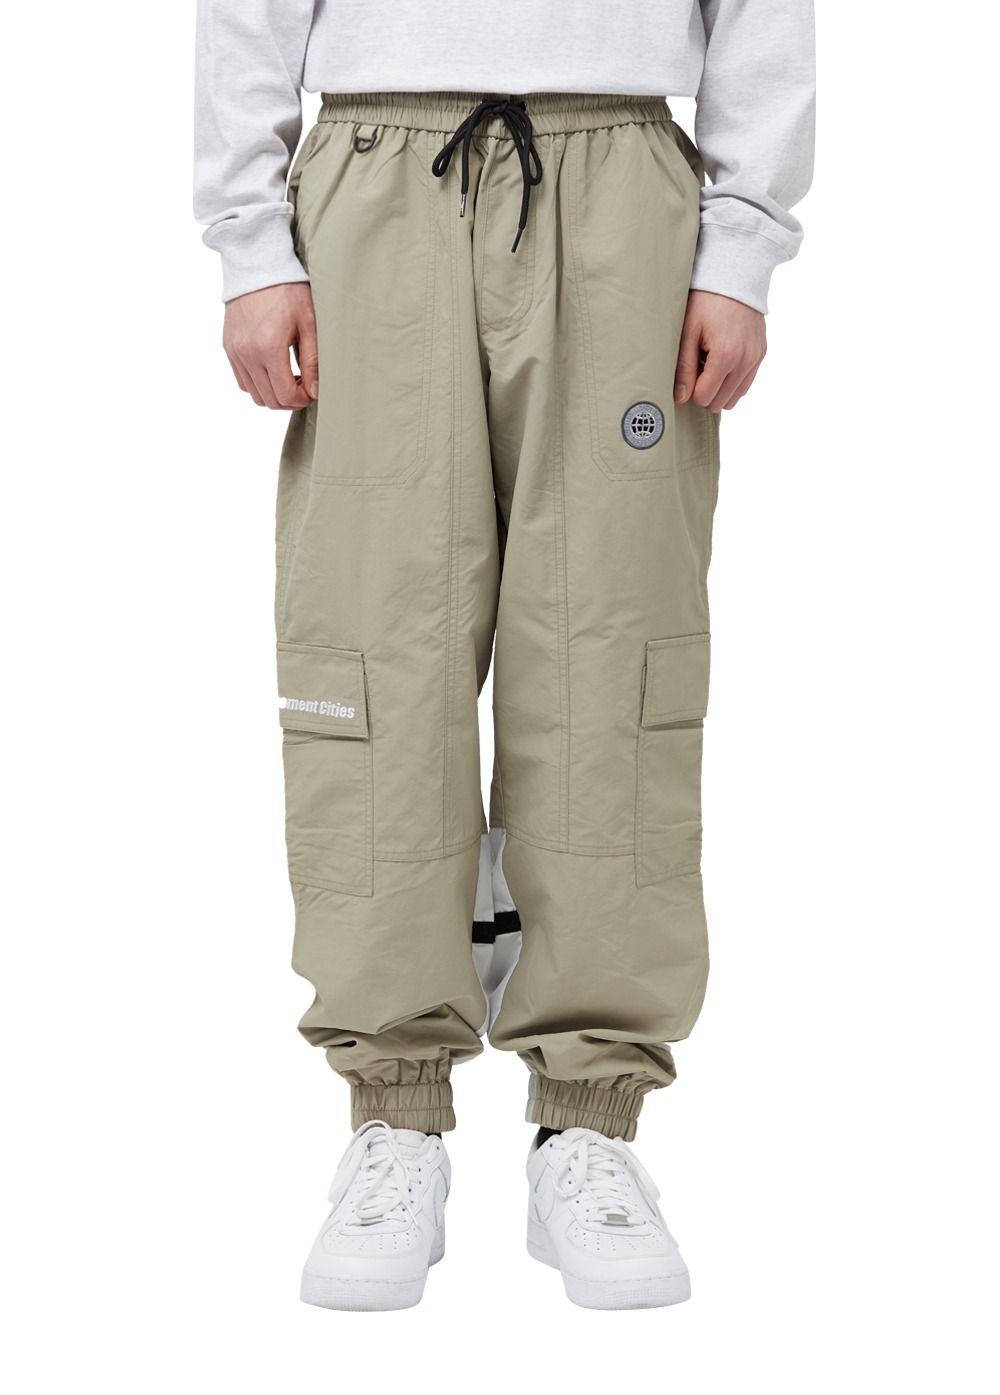 LMC GY2 EXTREME PANTS olive